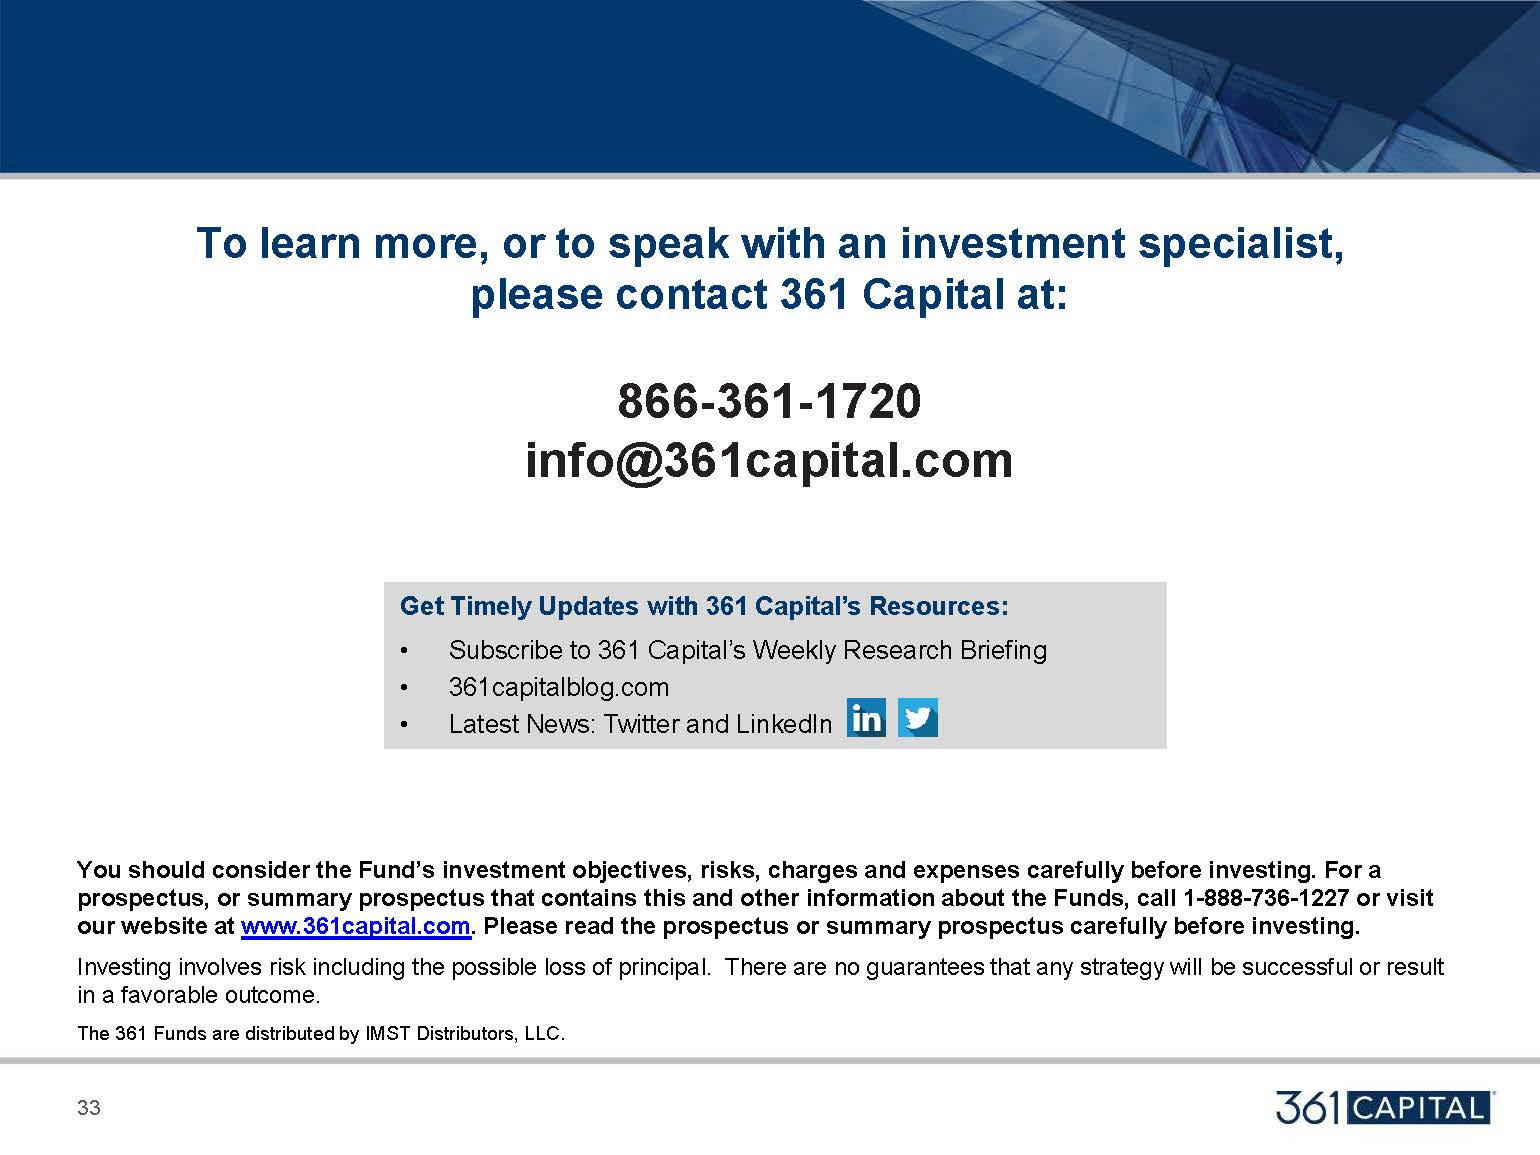 To learn more, or to speak with investment specialist please contact 361 Capital: 866-361-1720